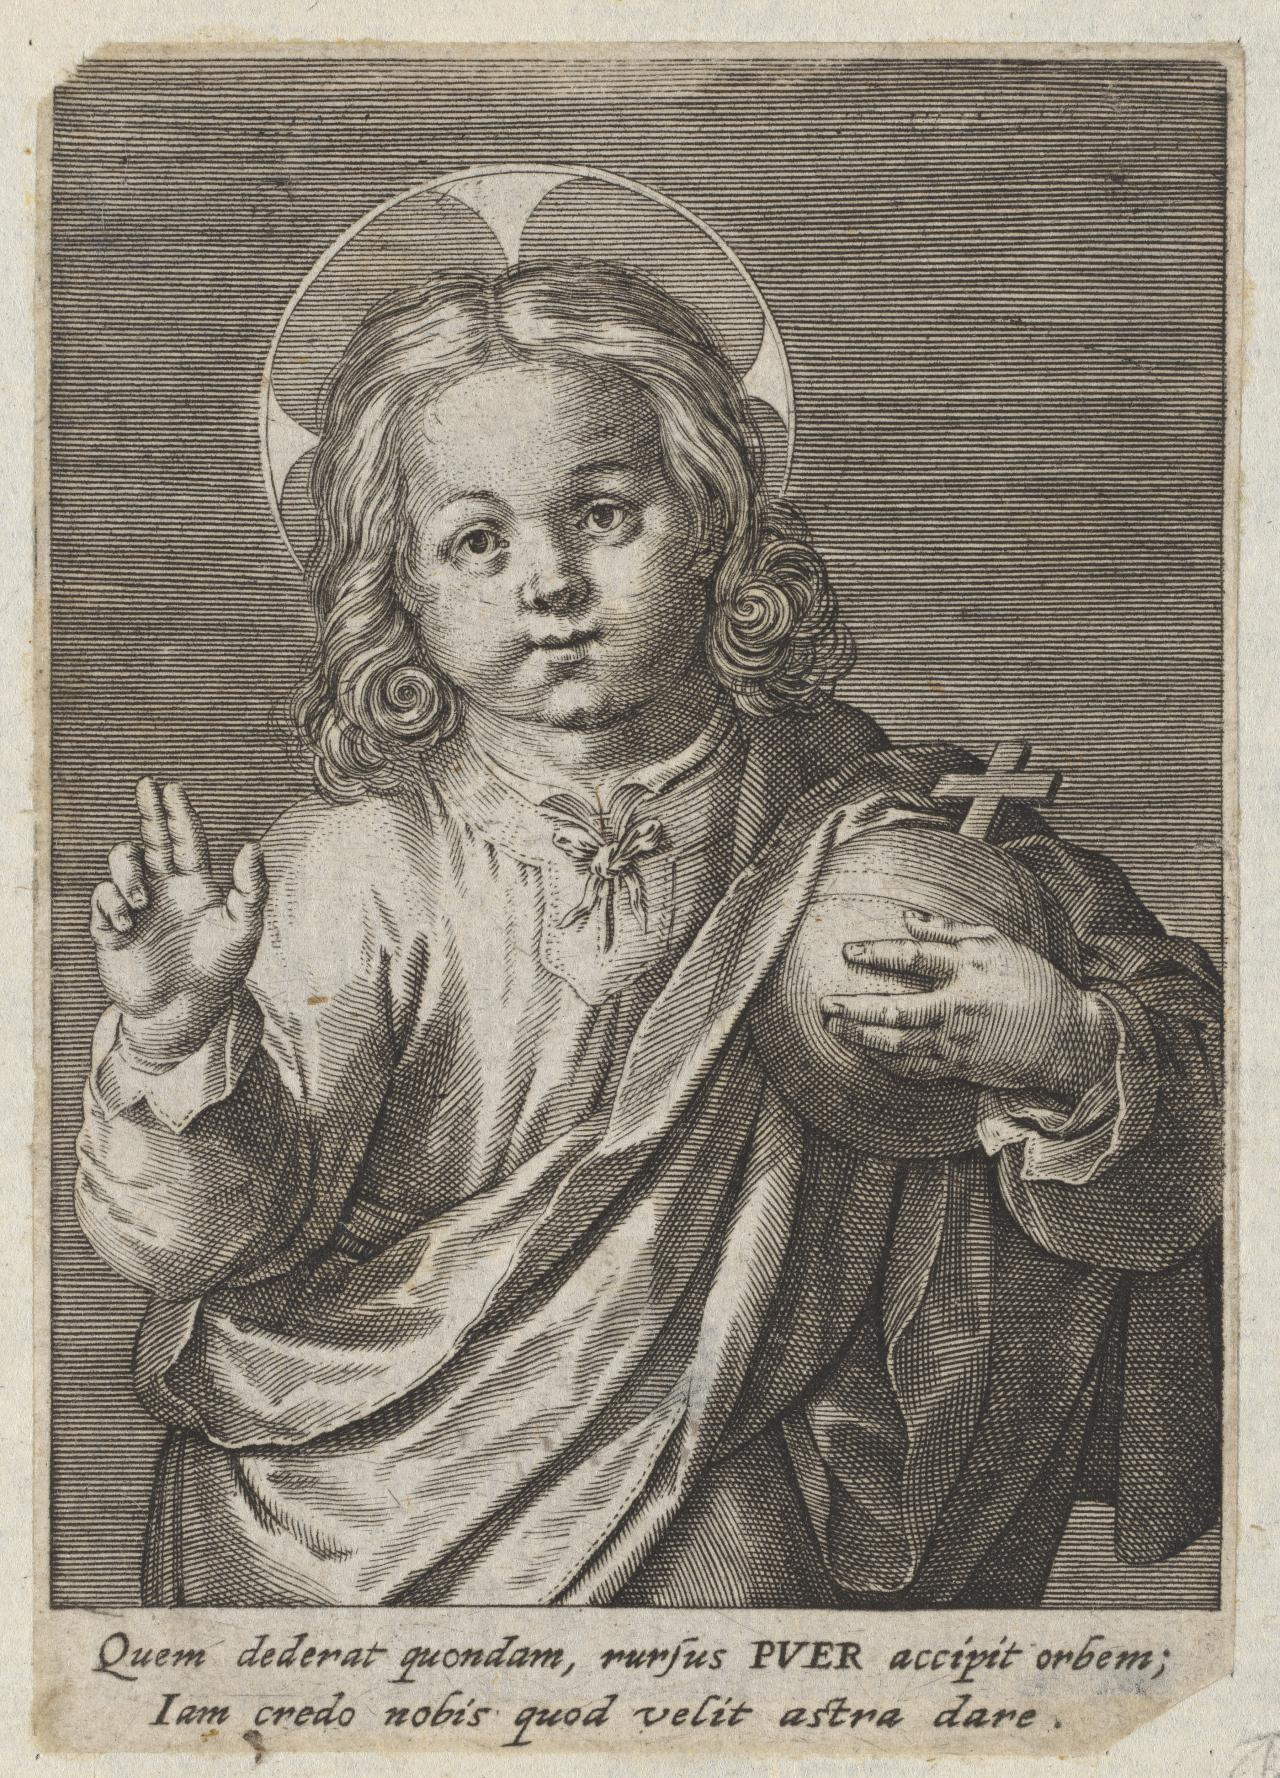 Christ Child Blessing, with an Orb in Proper Left Hand.